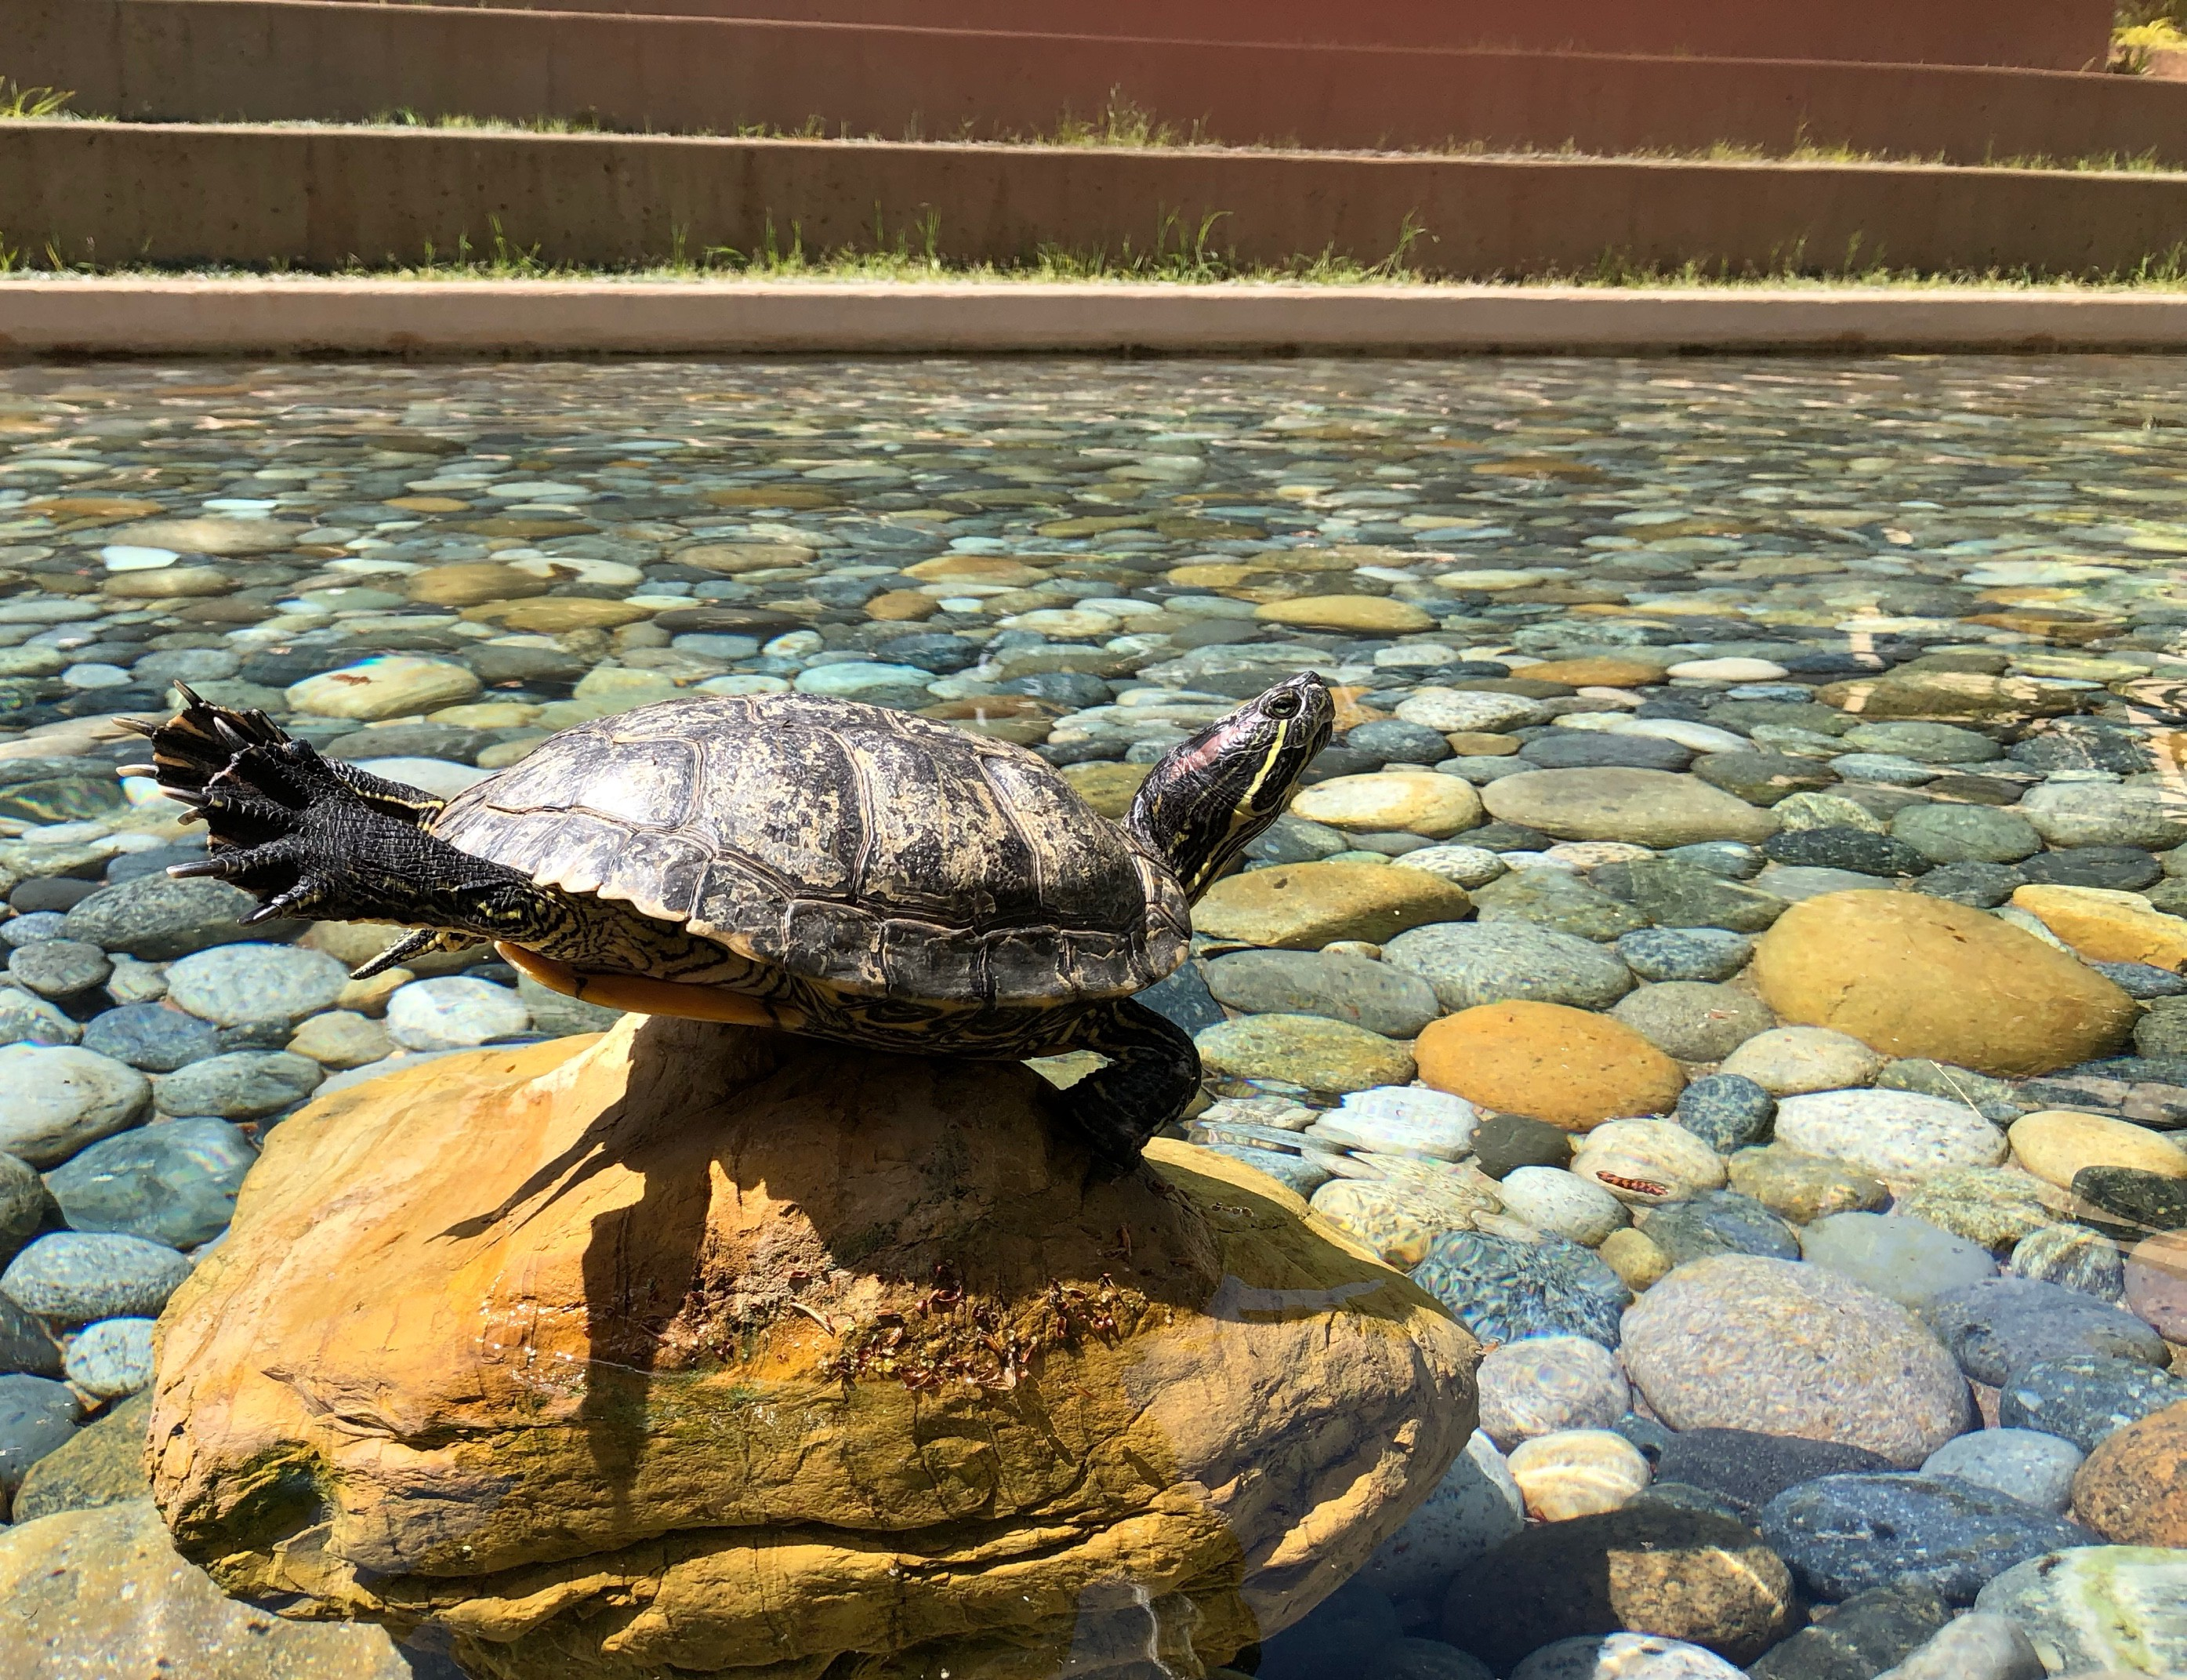 A turtle stretching its legs under the sun at VMware's turtle pond